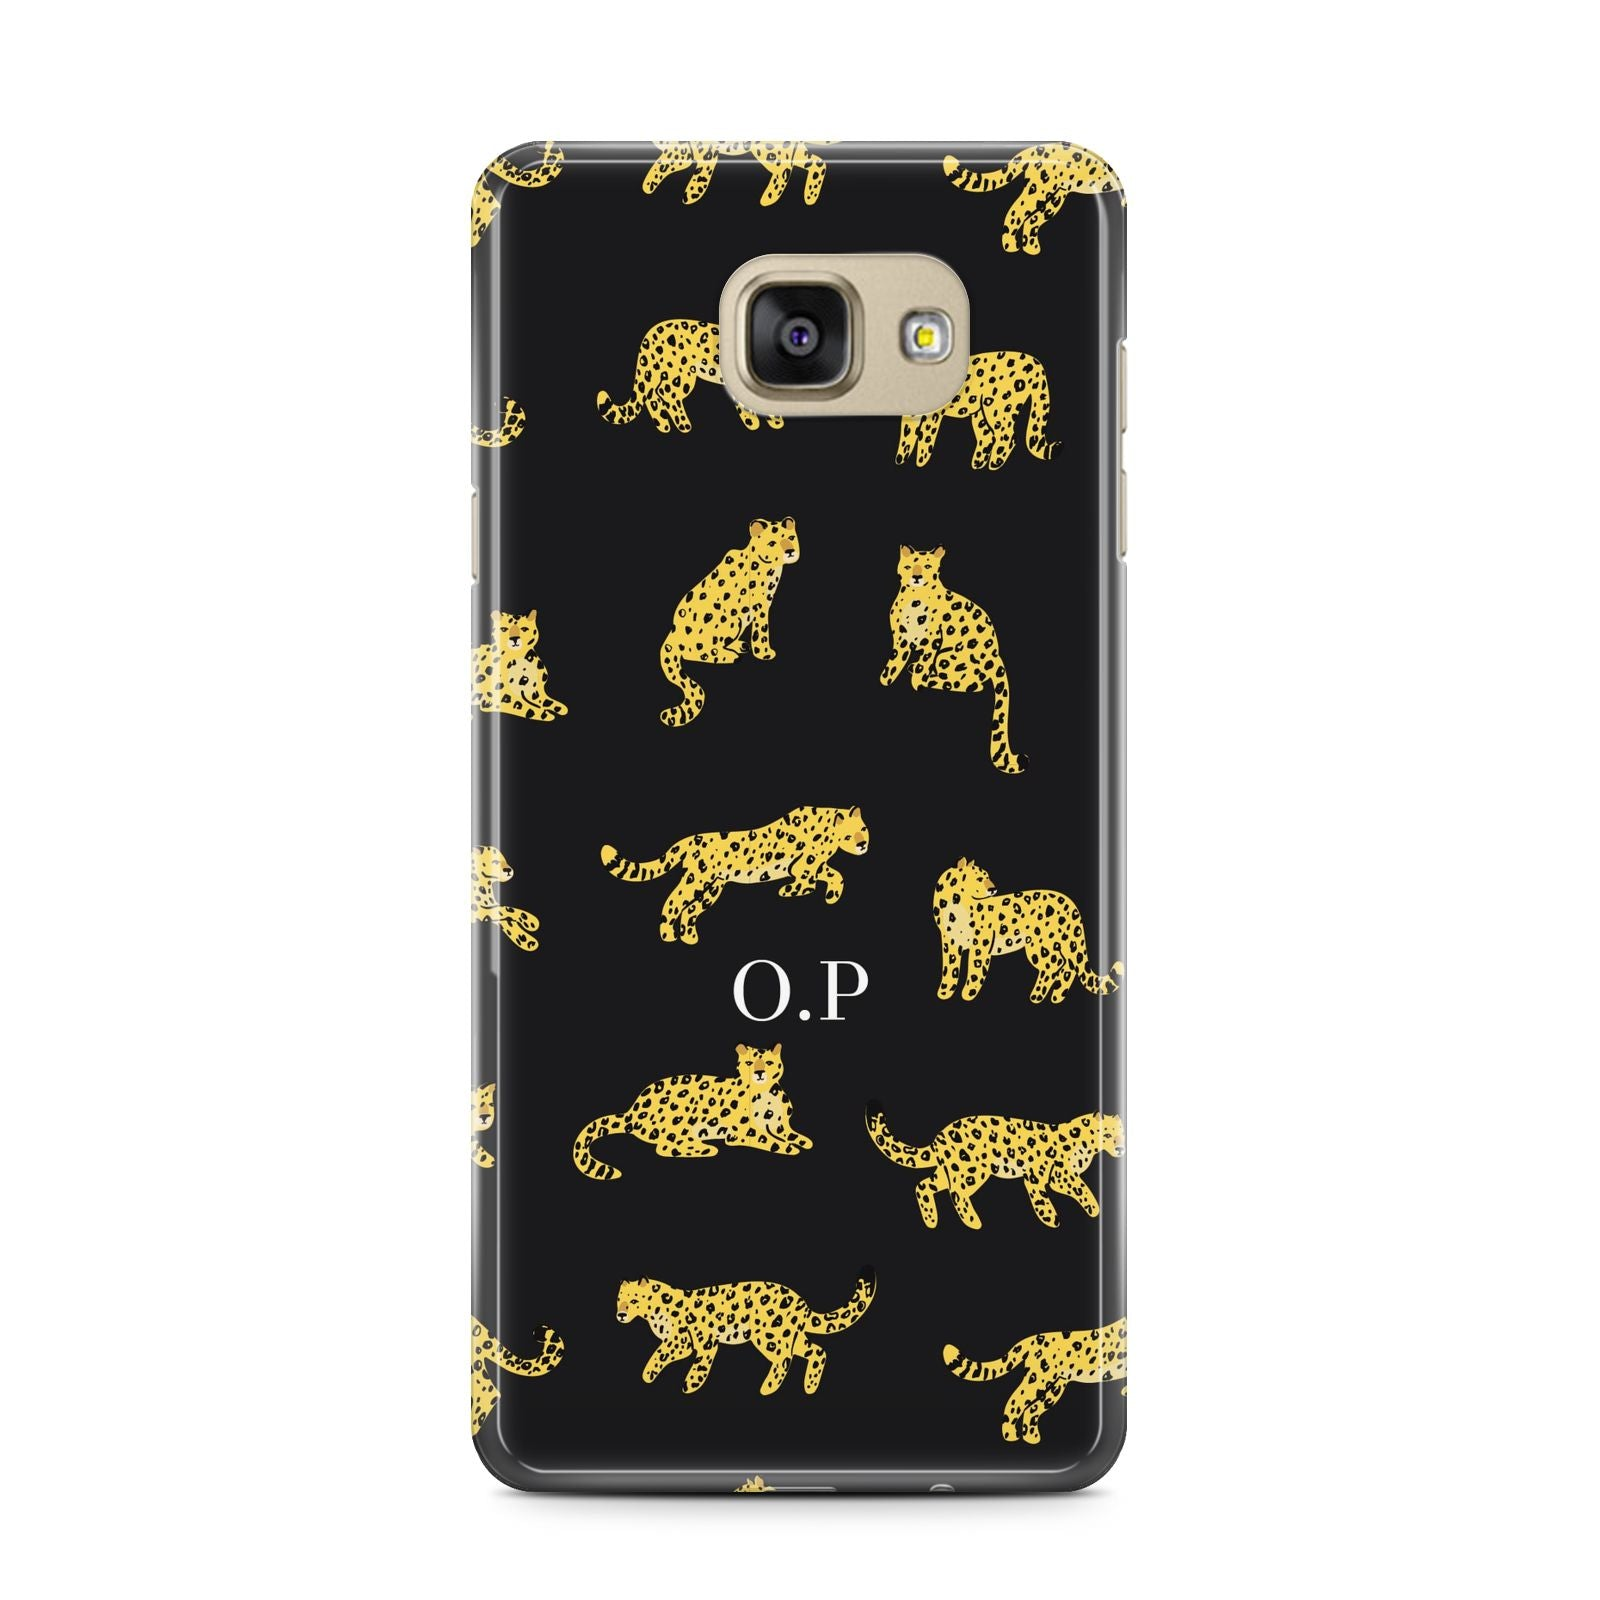 Prowling Leopard Samsung Galaxy A7 2016 Case on gold phone